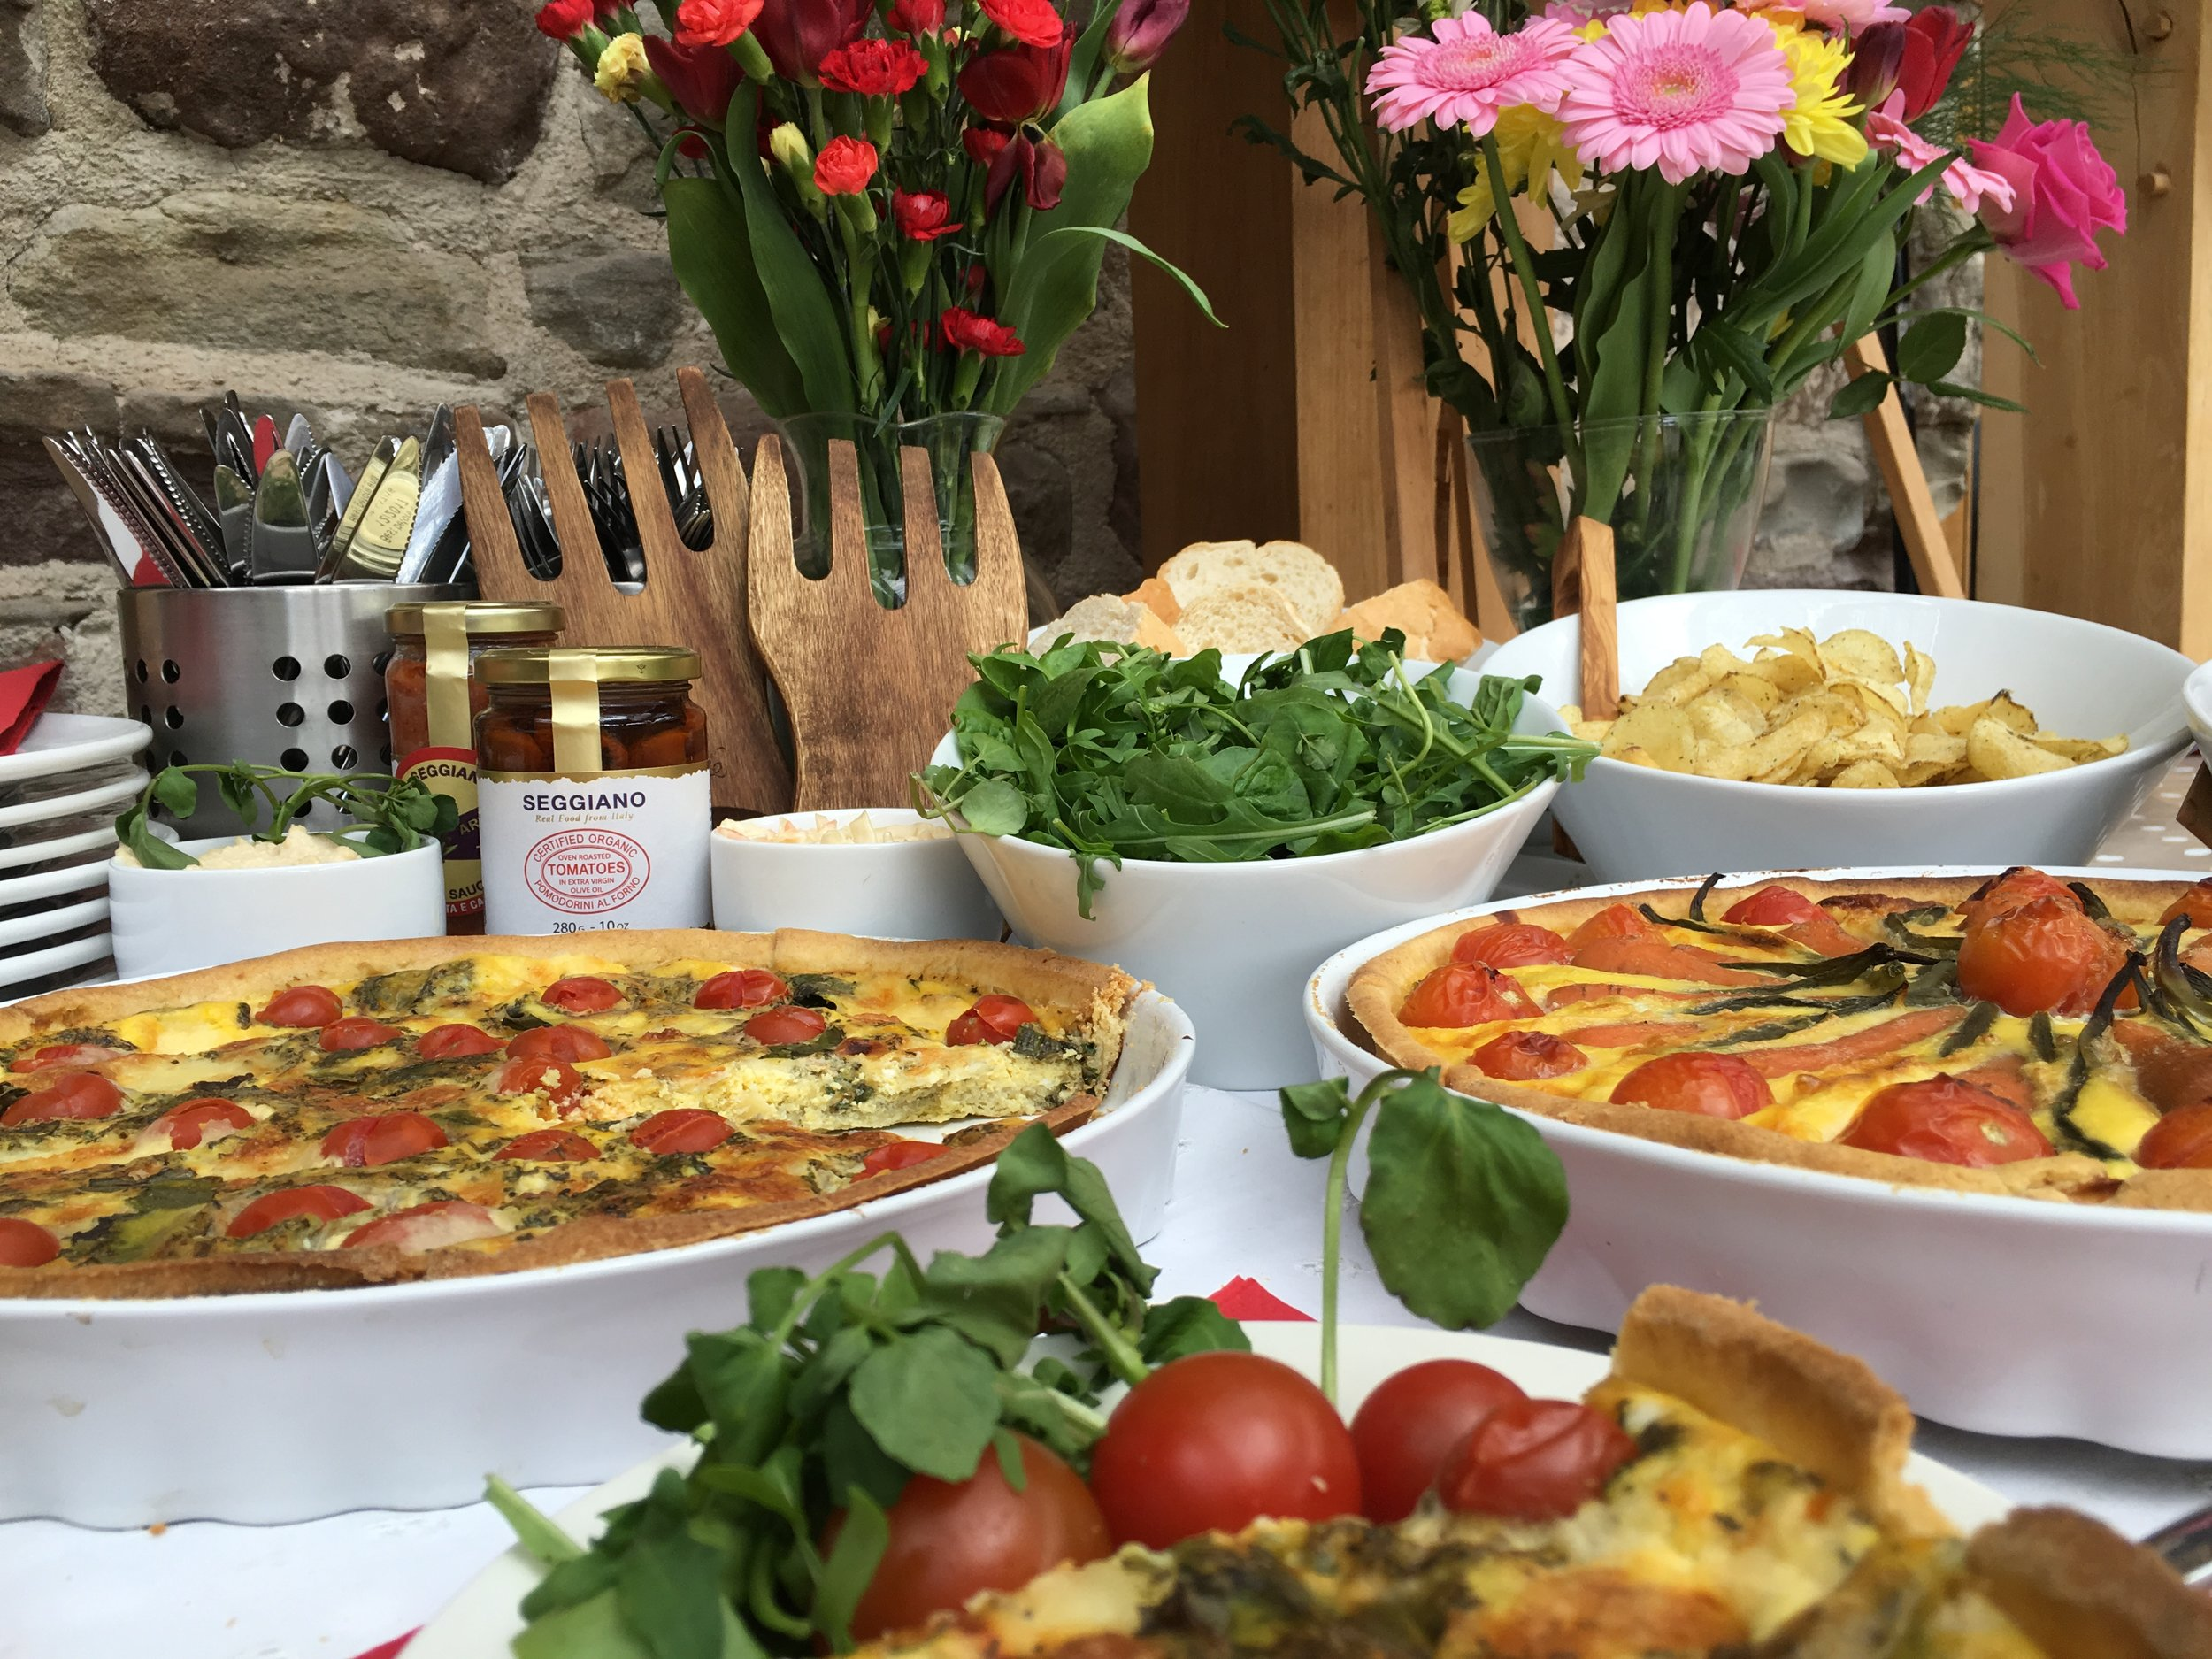 Alfresco - Bordello Banquets catering - locally produced, artisan food, stylishly displayed buffets and dinners, in a riot of colour, rich in taste.